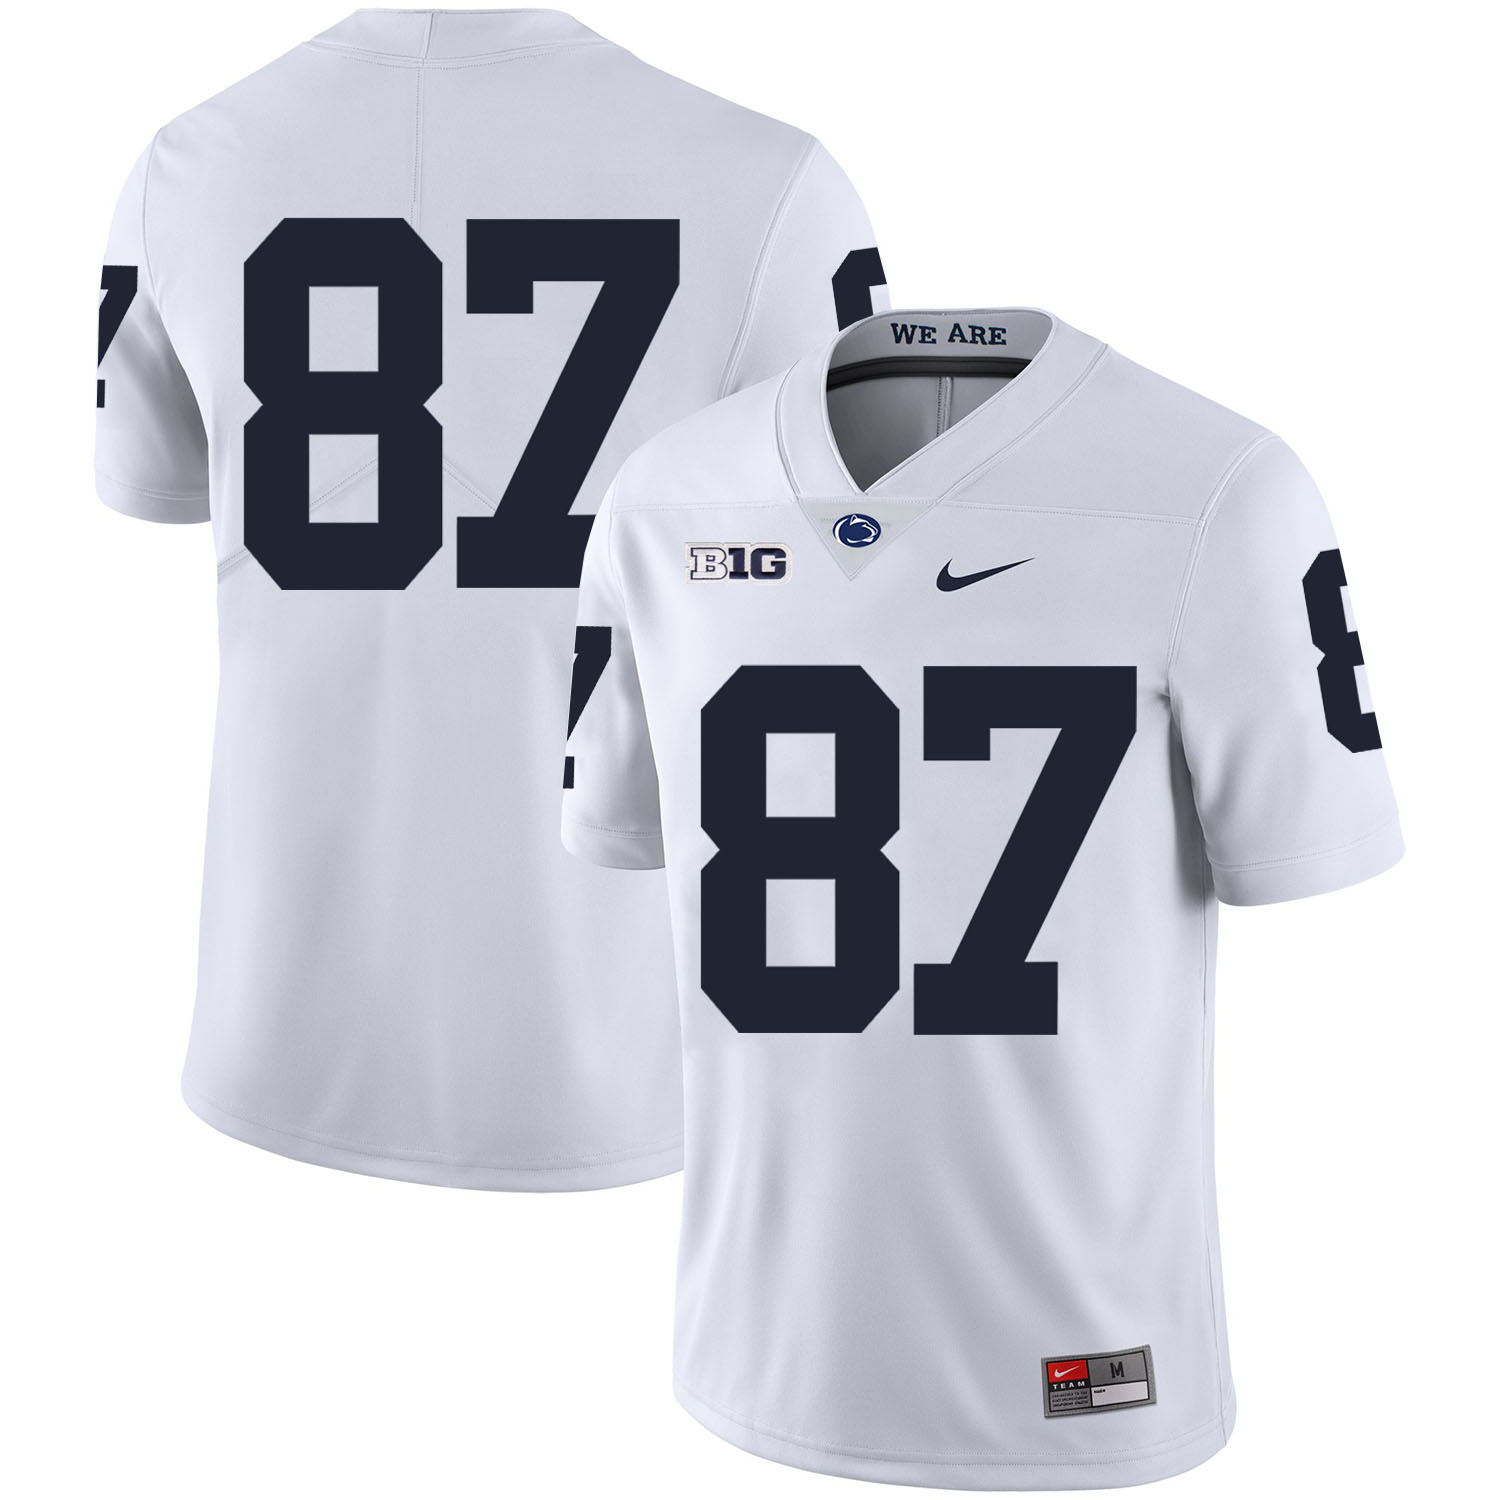 Penn State Nittany Lions 87 Kyle Carter White Nike College Football Jersey